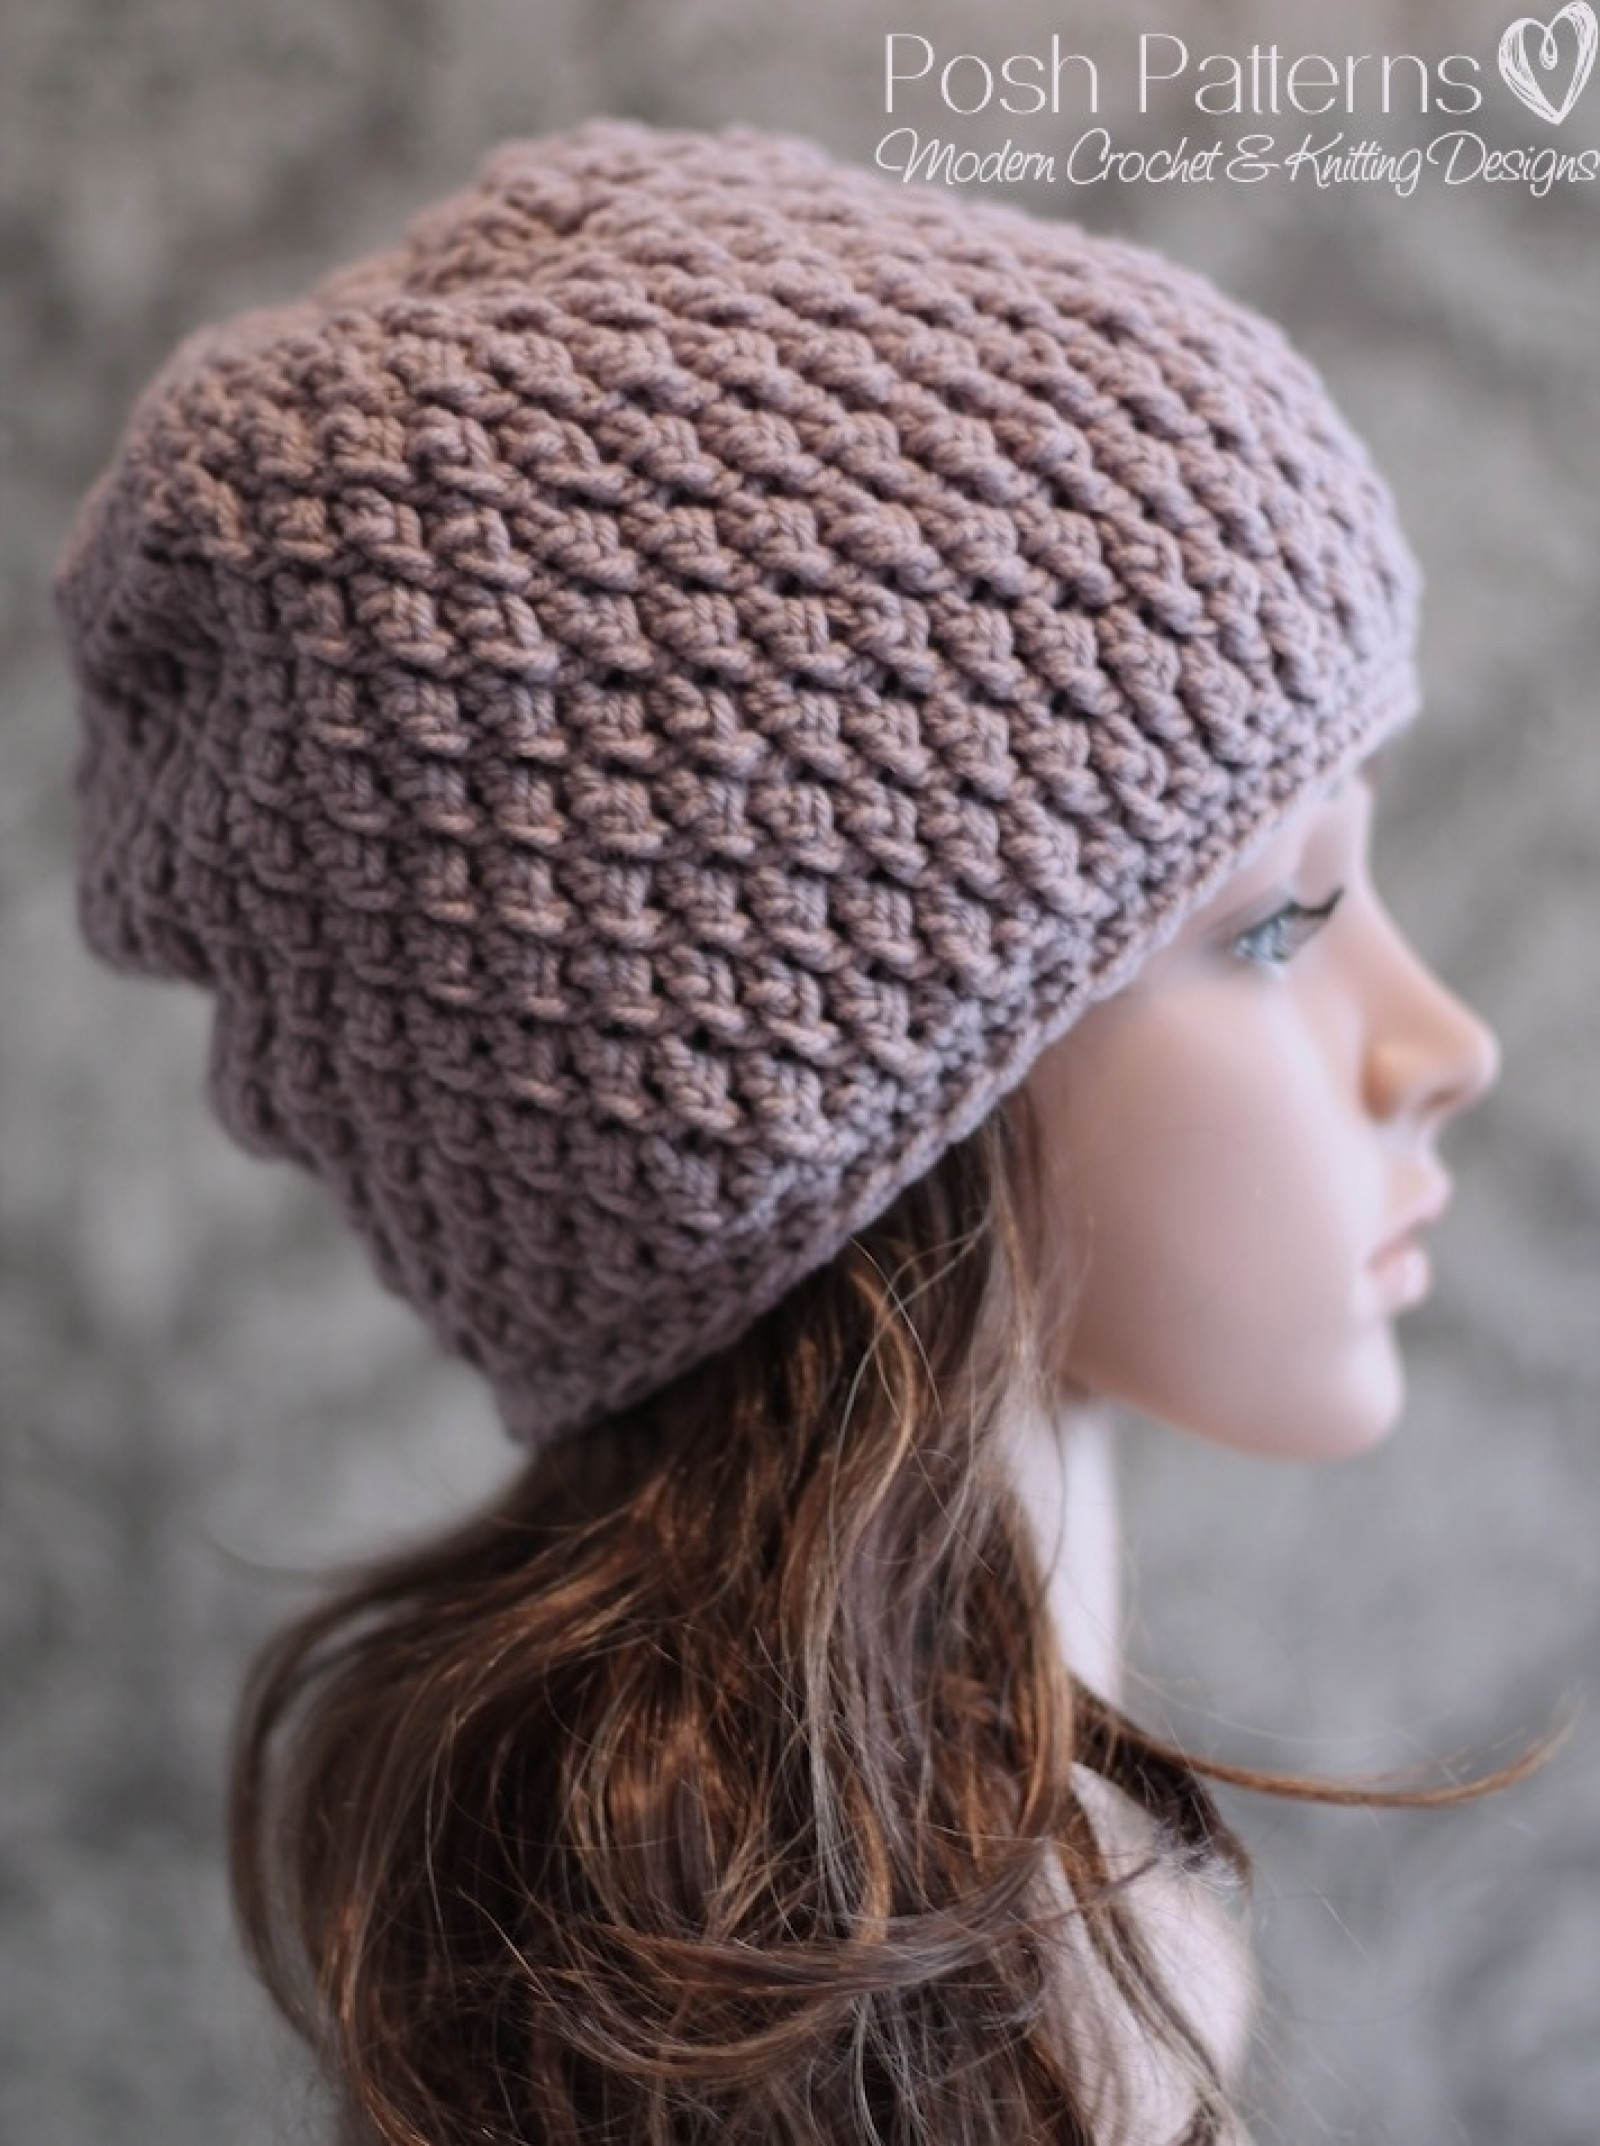 Crochet Beanie Beautiful Slouchy Hat Crochet Pattern Faux Cable Beanie Of Amazing 44 Images Crochet Beanie